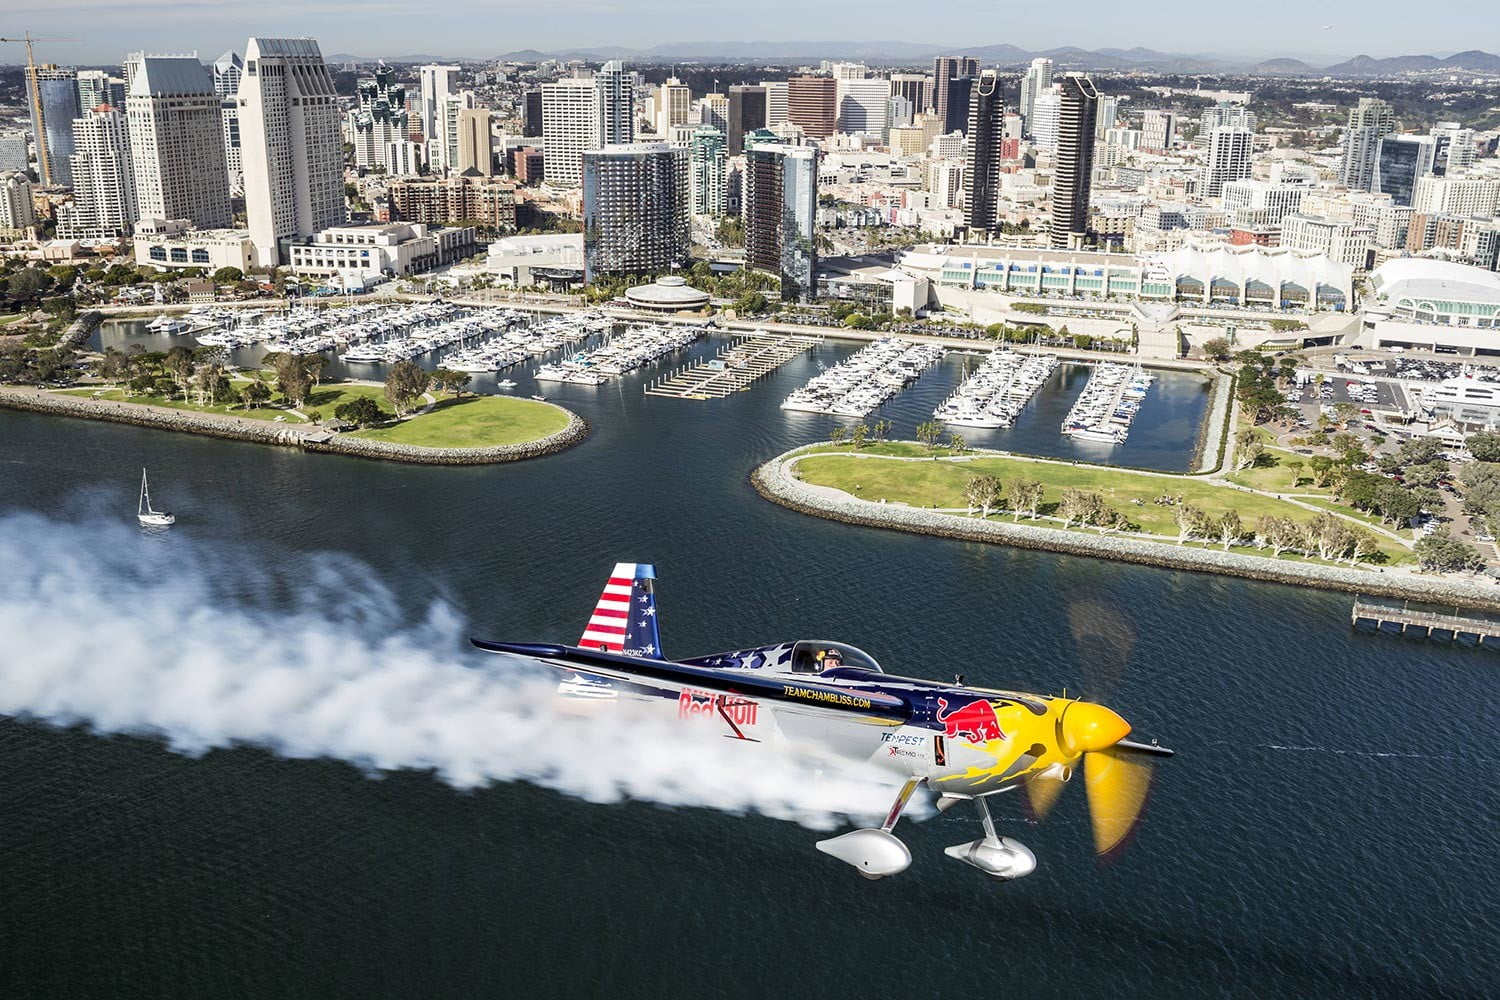 judging red bull air races with tech race san diego preview 1  chris tedesco redbull content pool